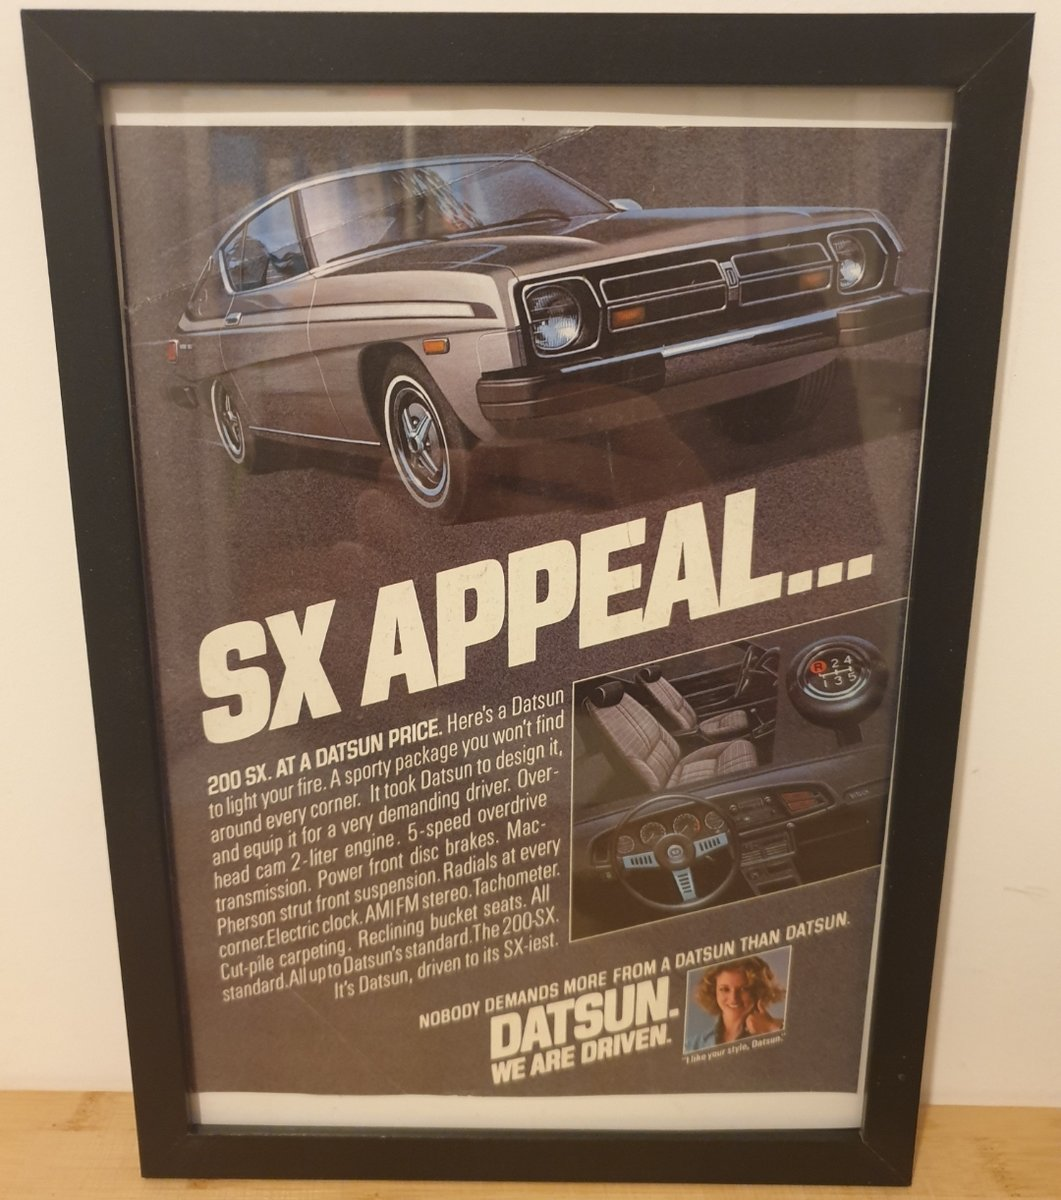 1962 Original 1978 Datsun 200SX Framed Advert For Sale (picture 1 of 3)